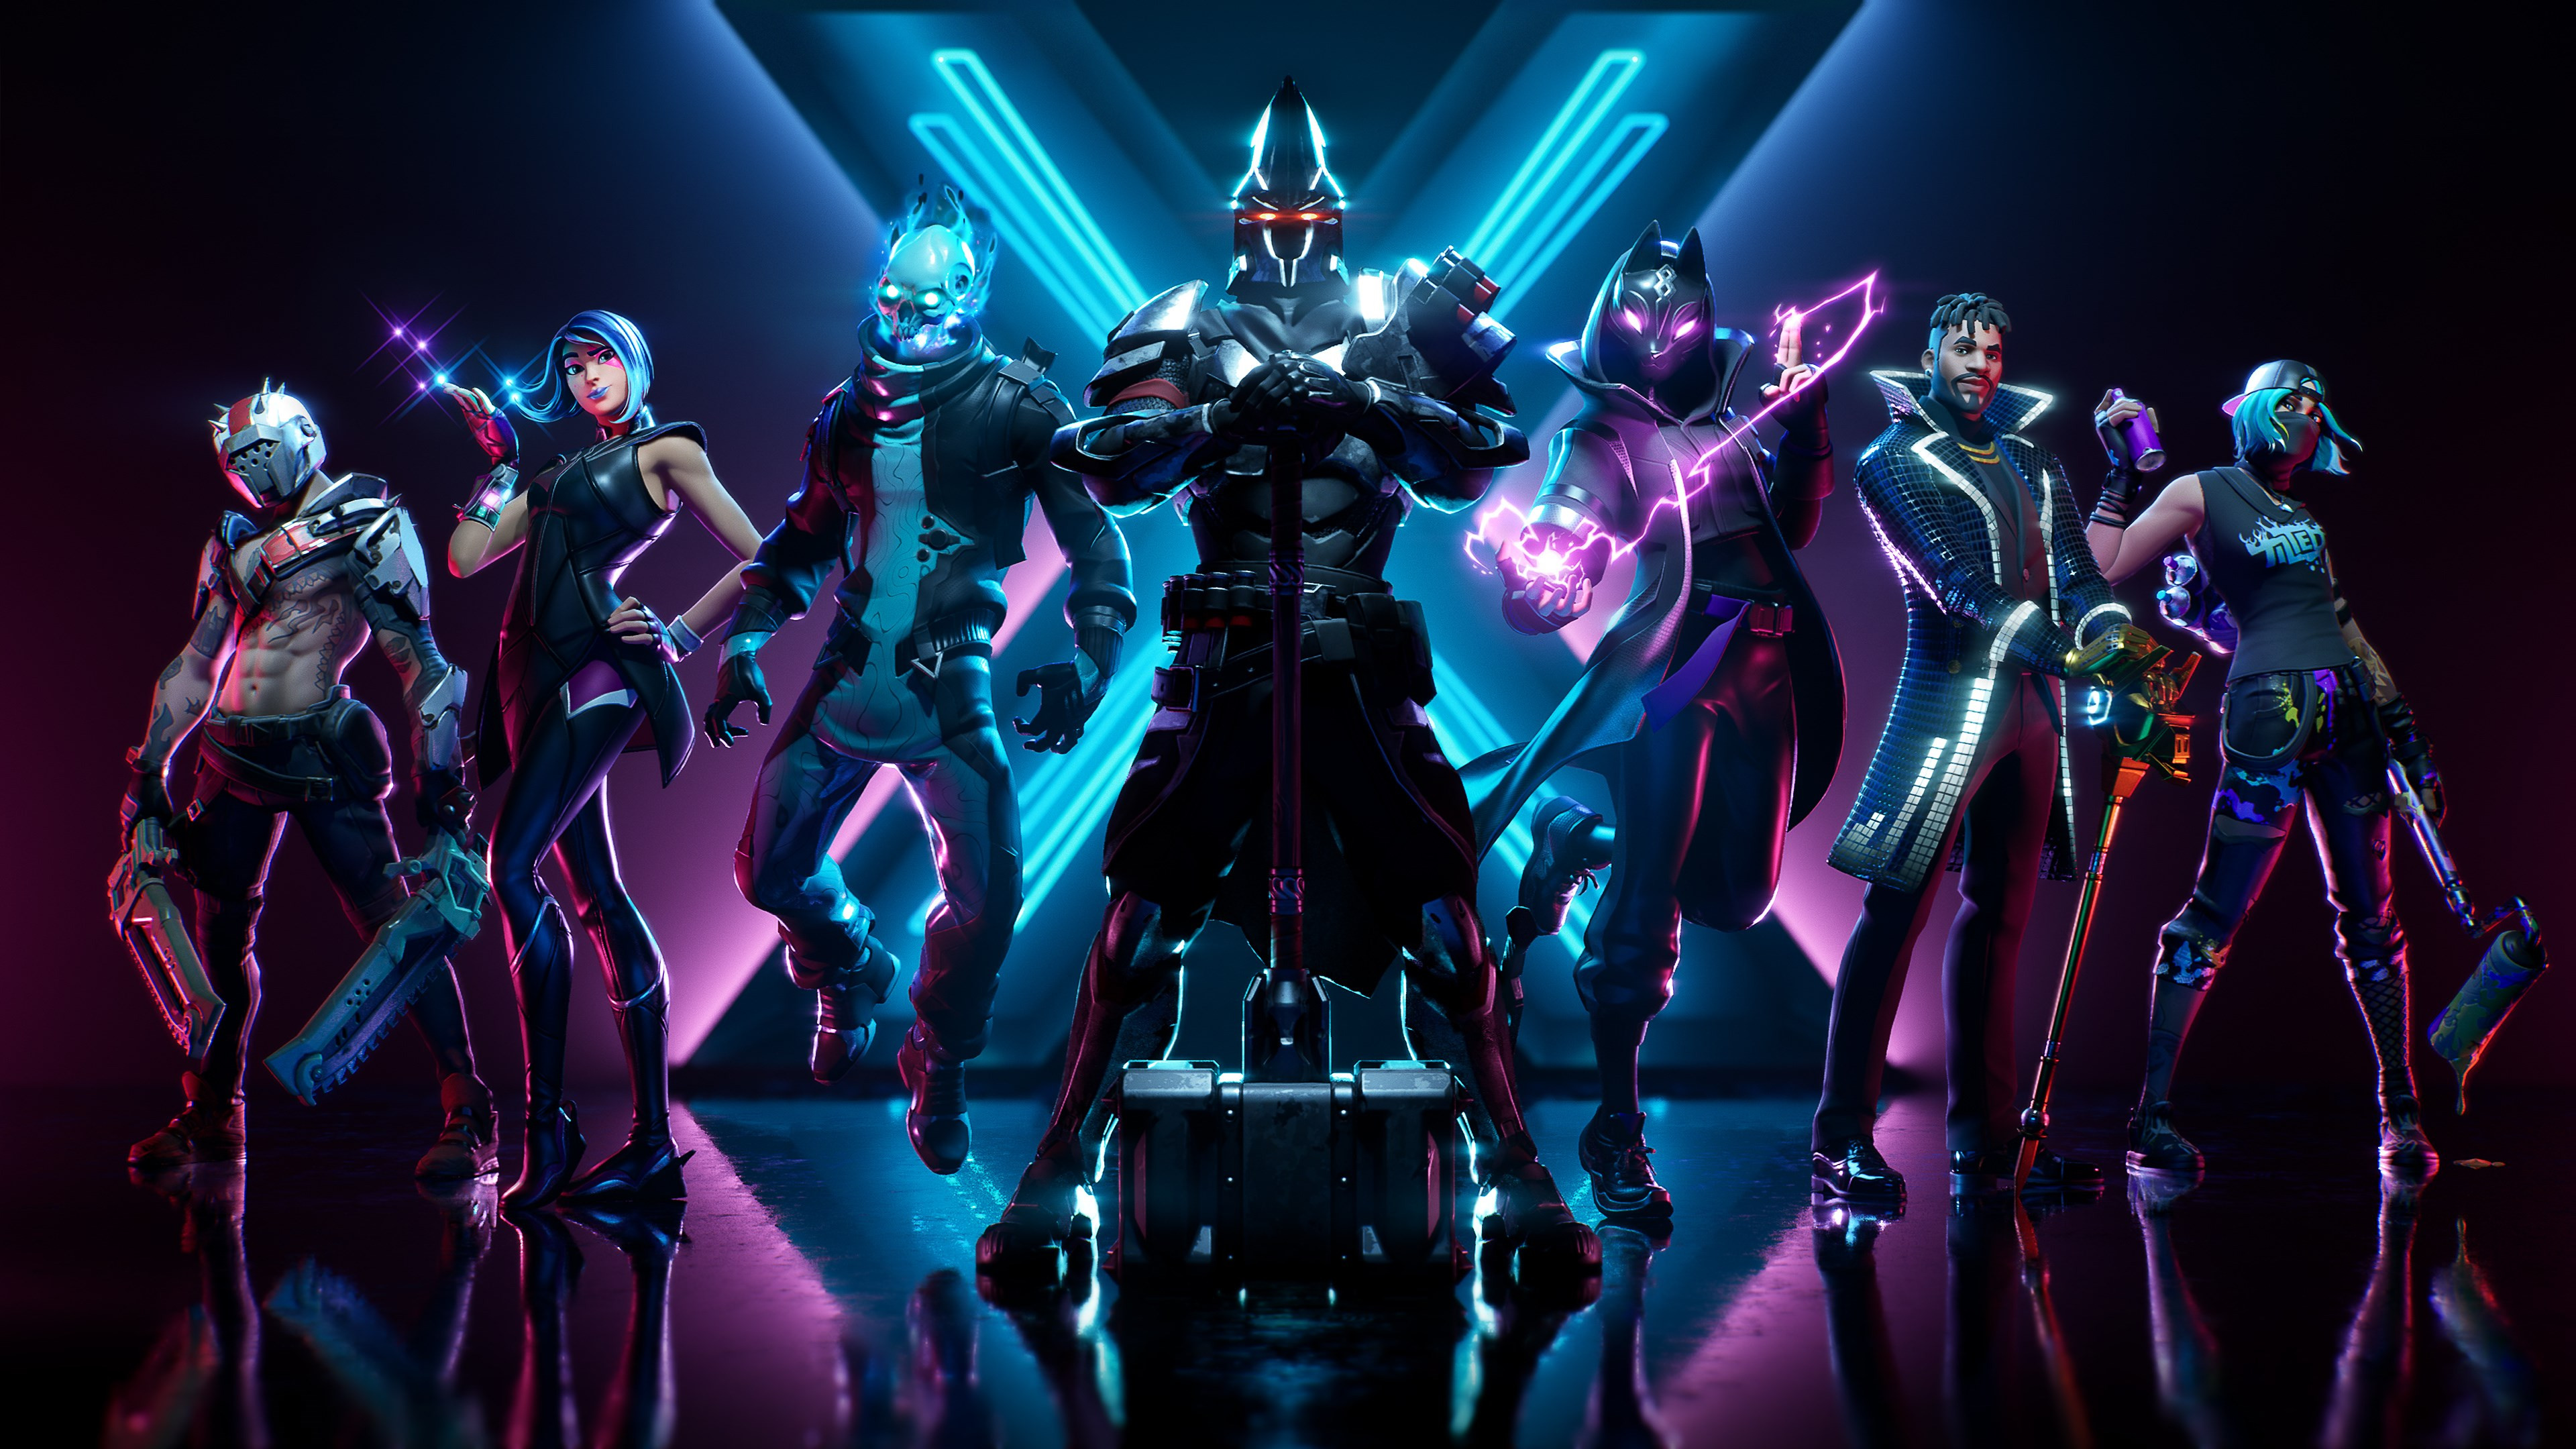 Fortnite Season X wallpaper 3840x2160